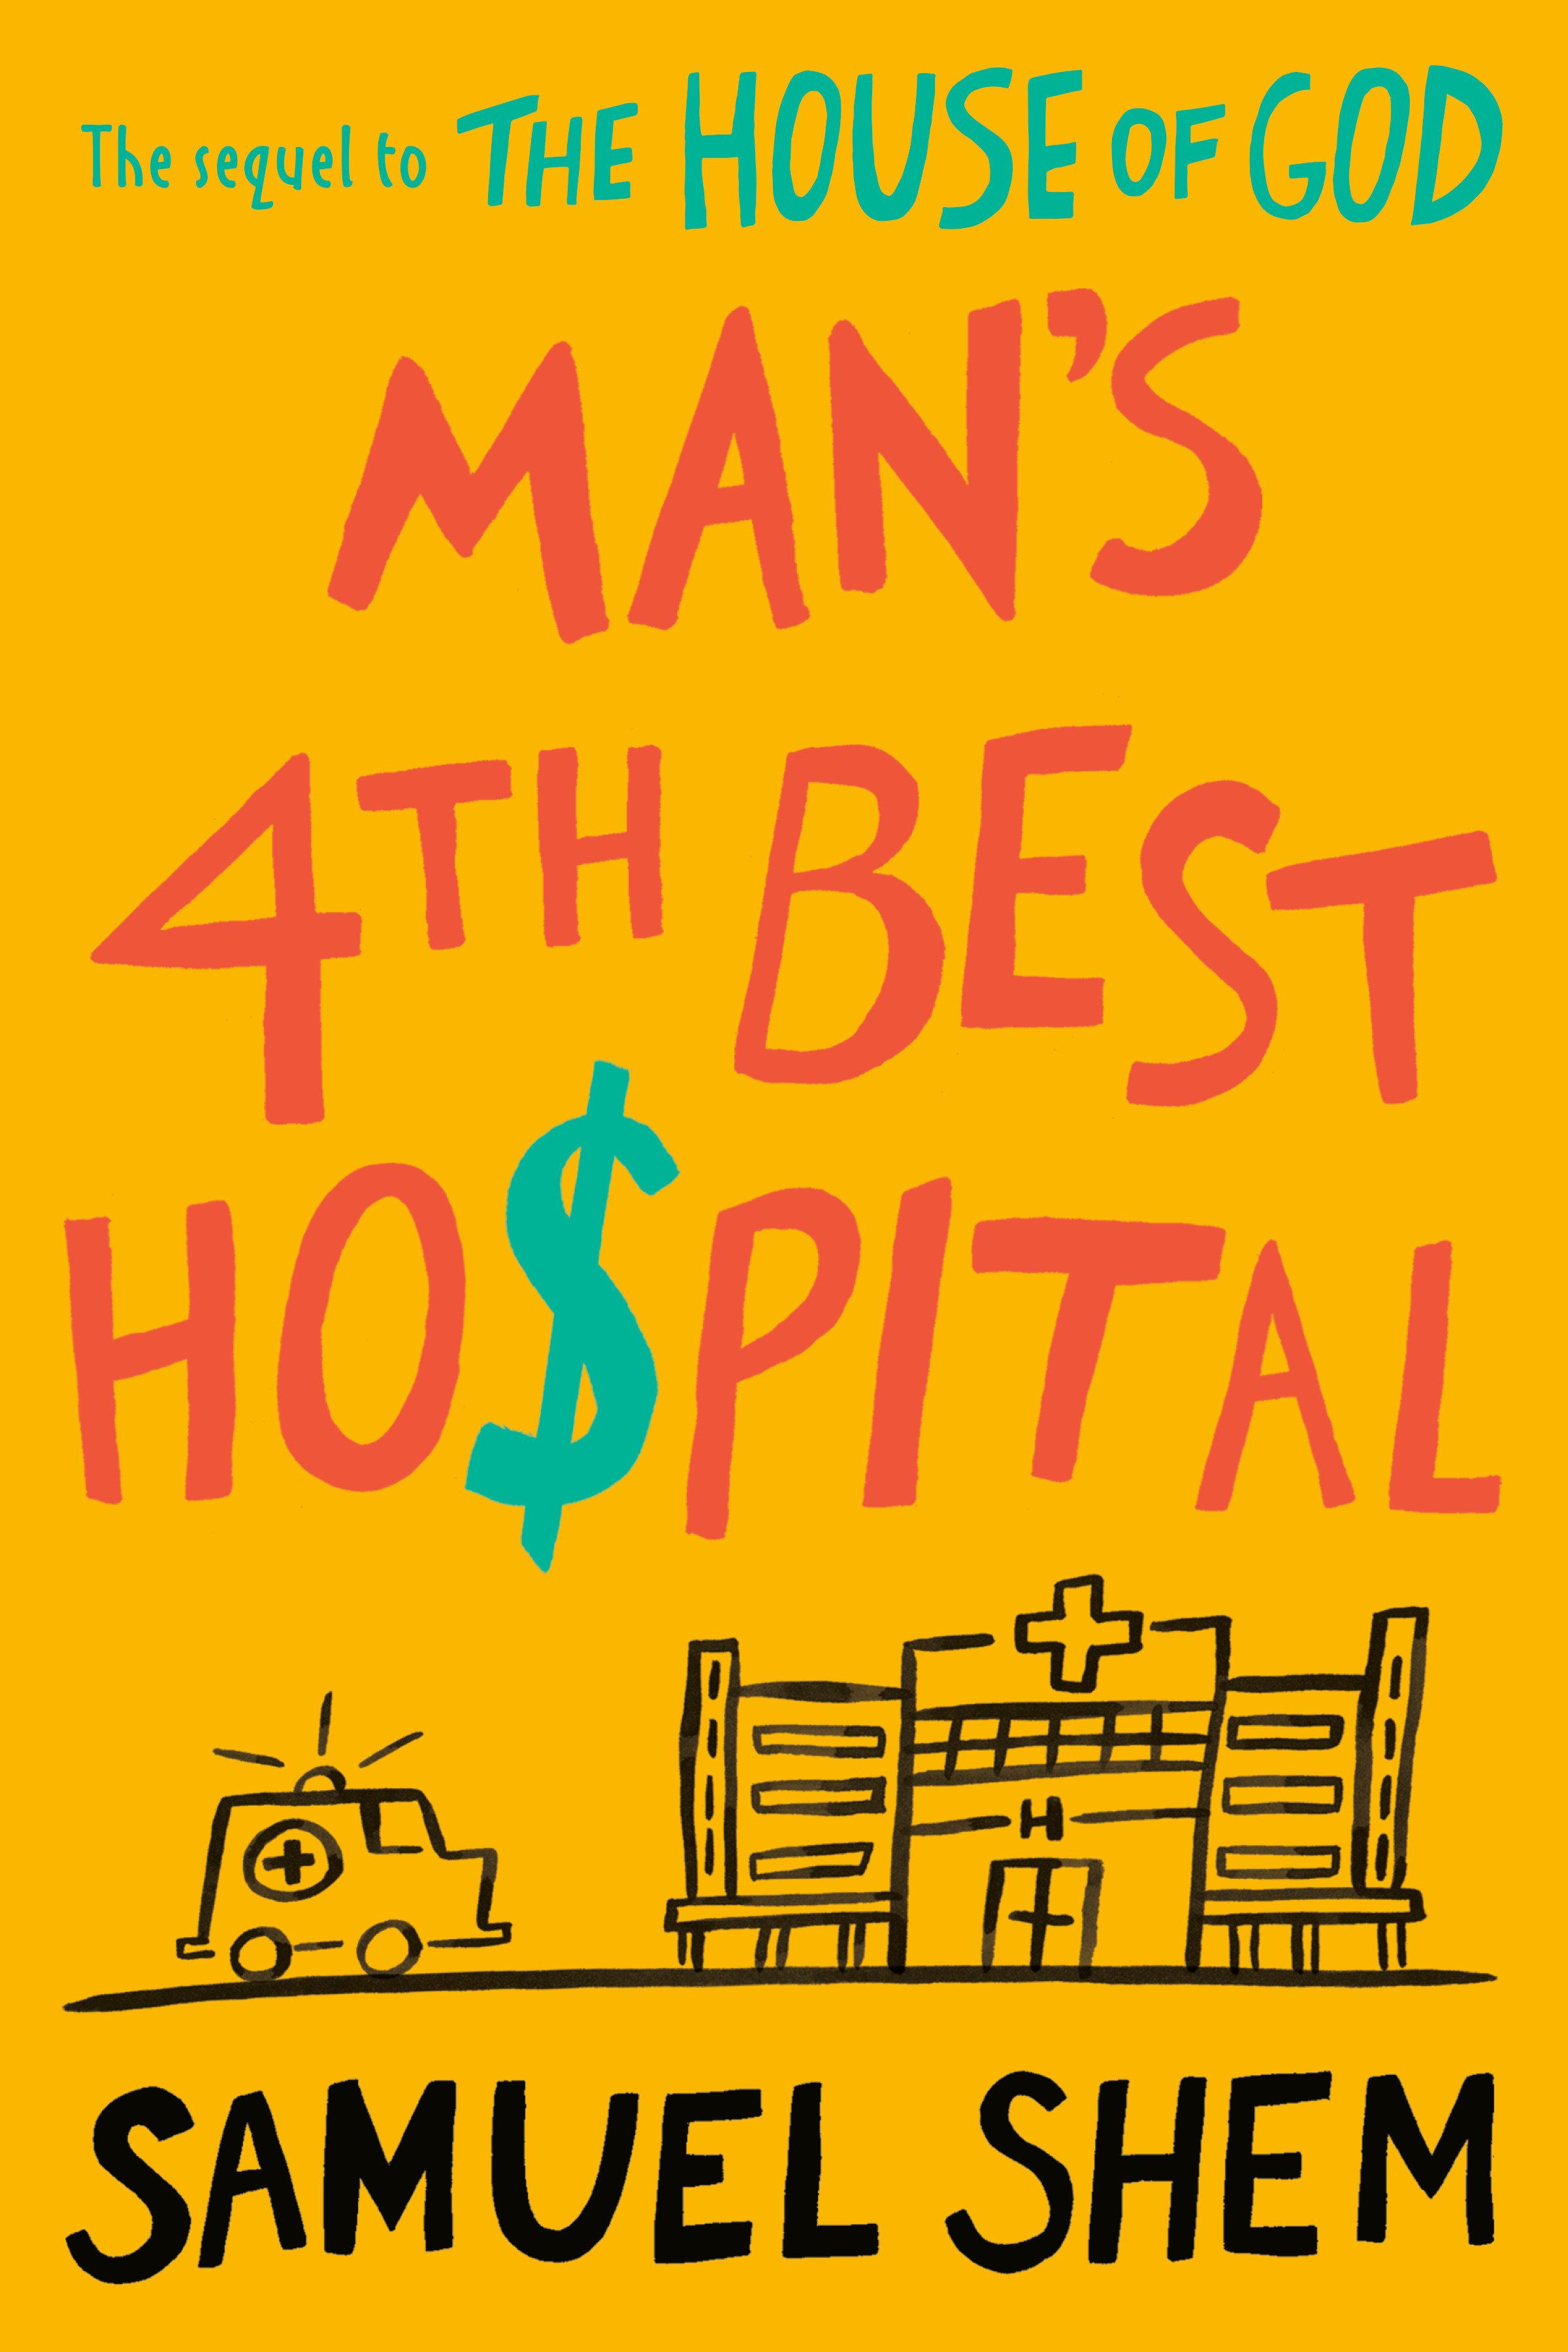 Cover Image of Man's 4th Best Hospital